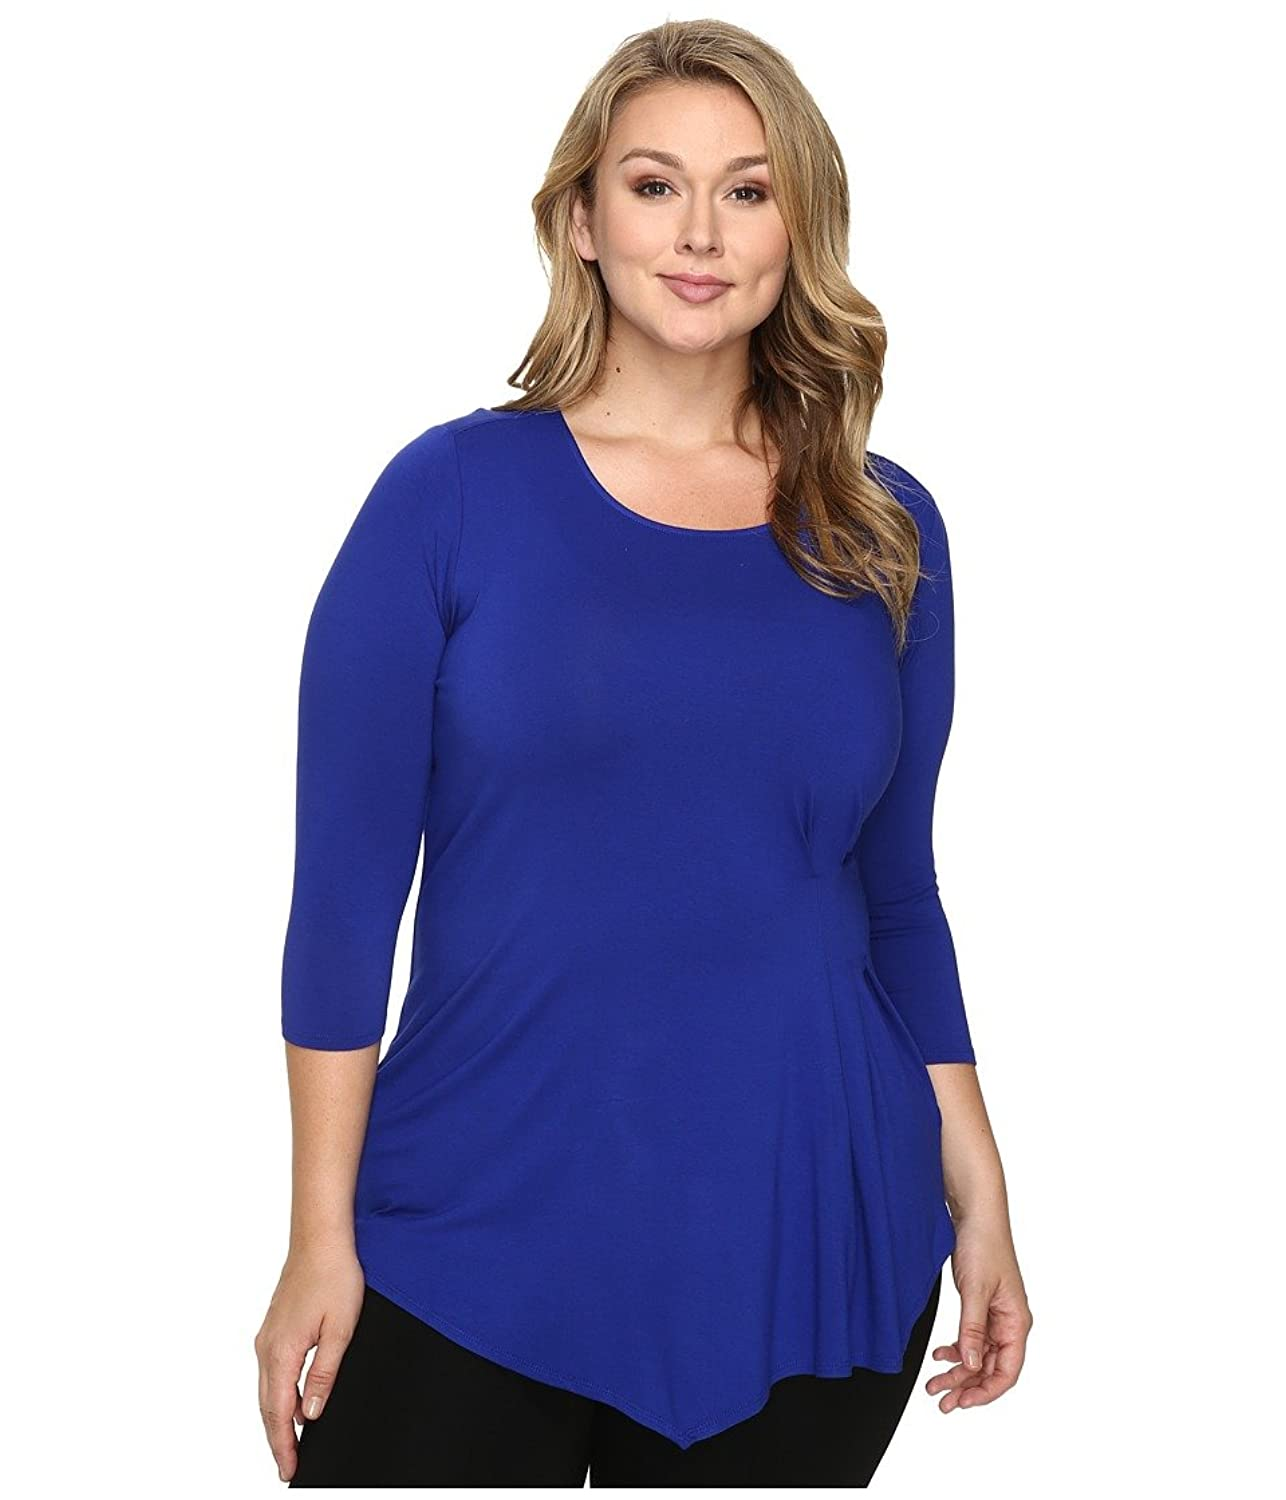 Vince Camuto Plus Women's Plus Size 3/4 Sleeve Side Ruched Top